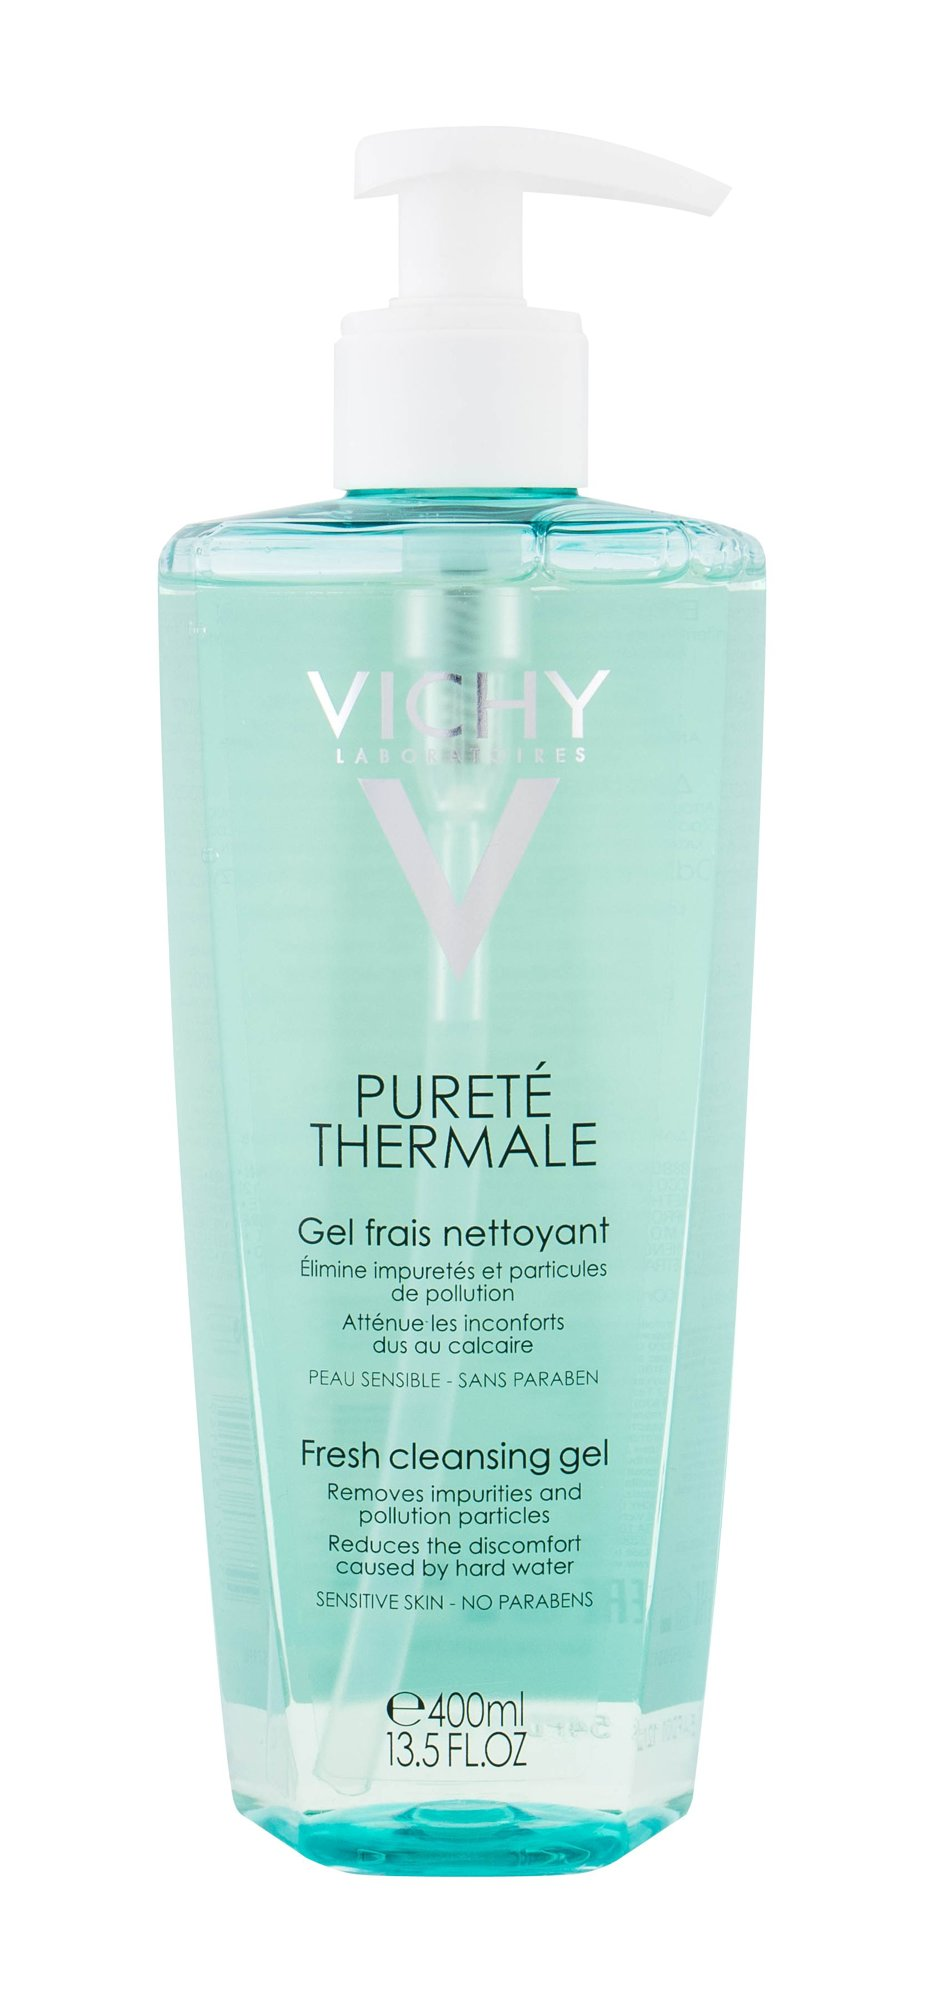 Vichy Purete Thermale Cleansing Gel 400ml